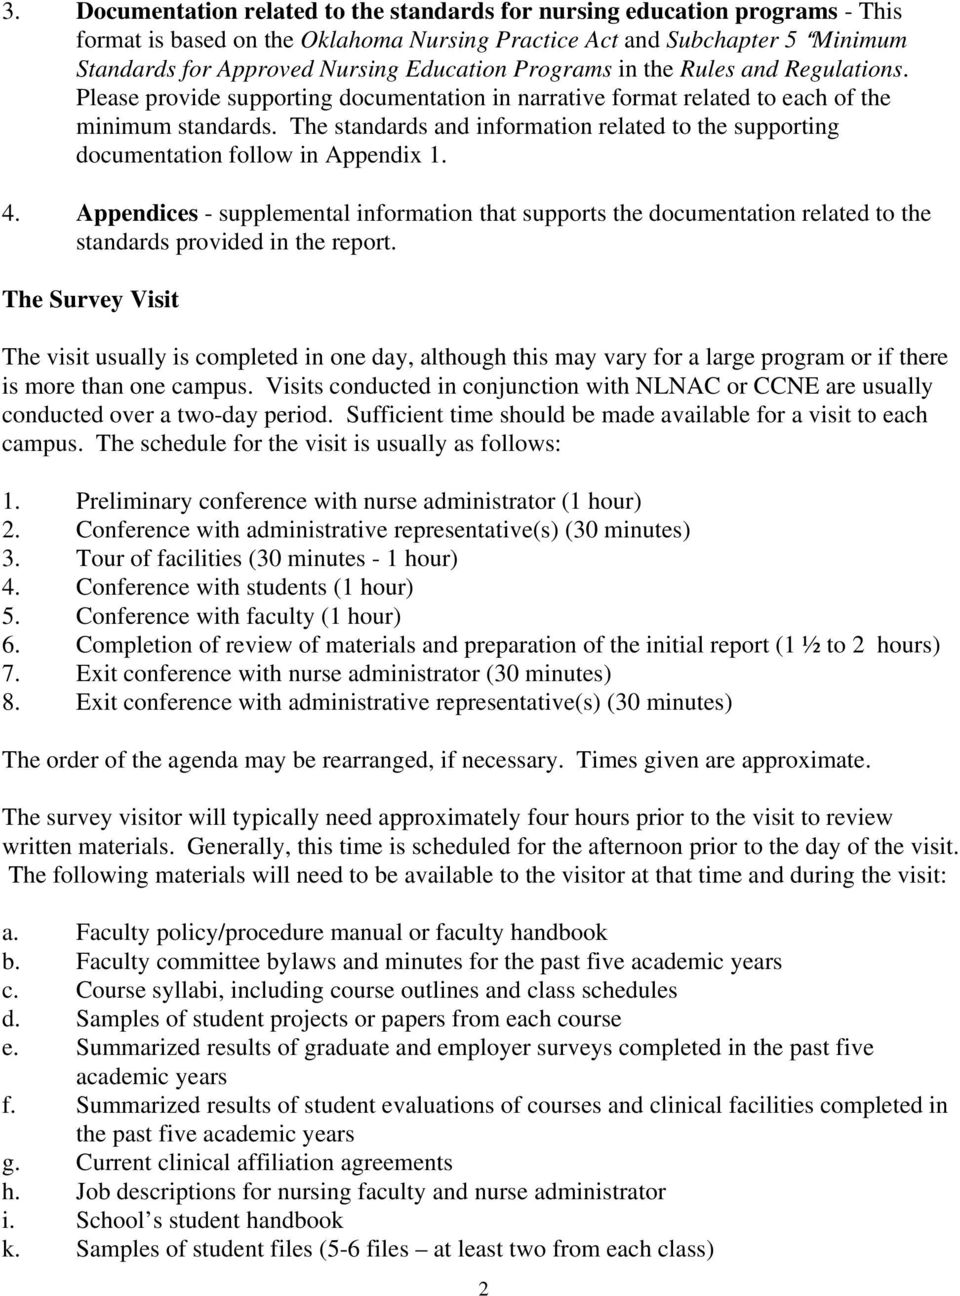 The standards and information related to the supporting documentation follow in Appendix 1. 4.